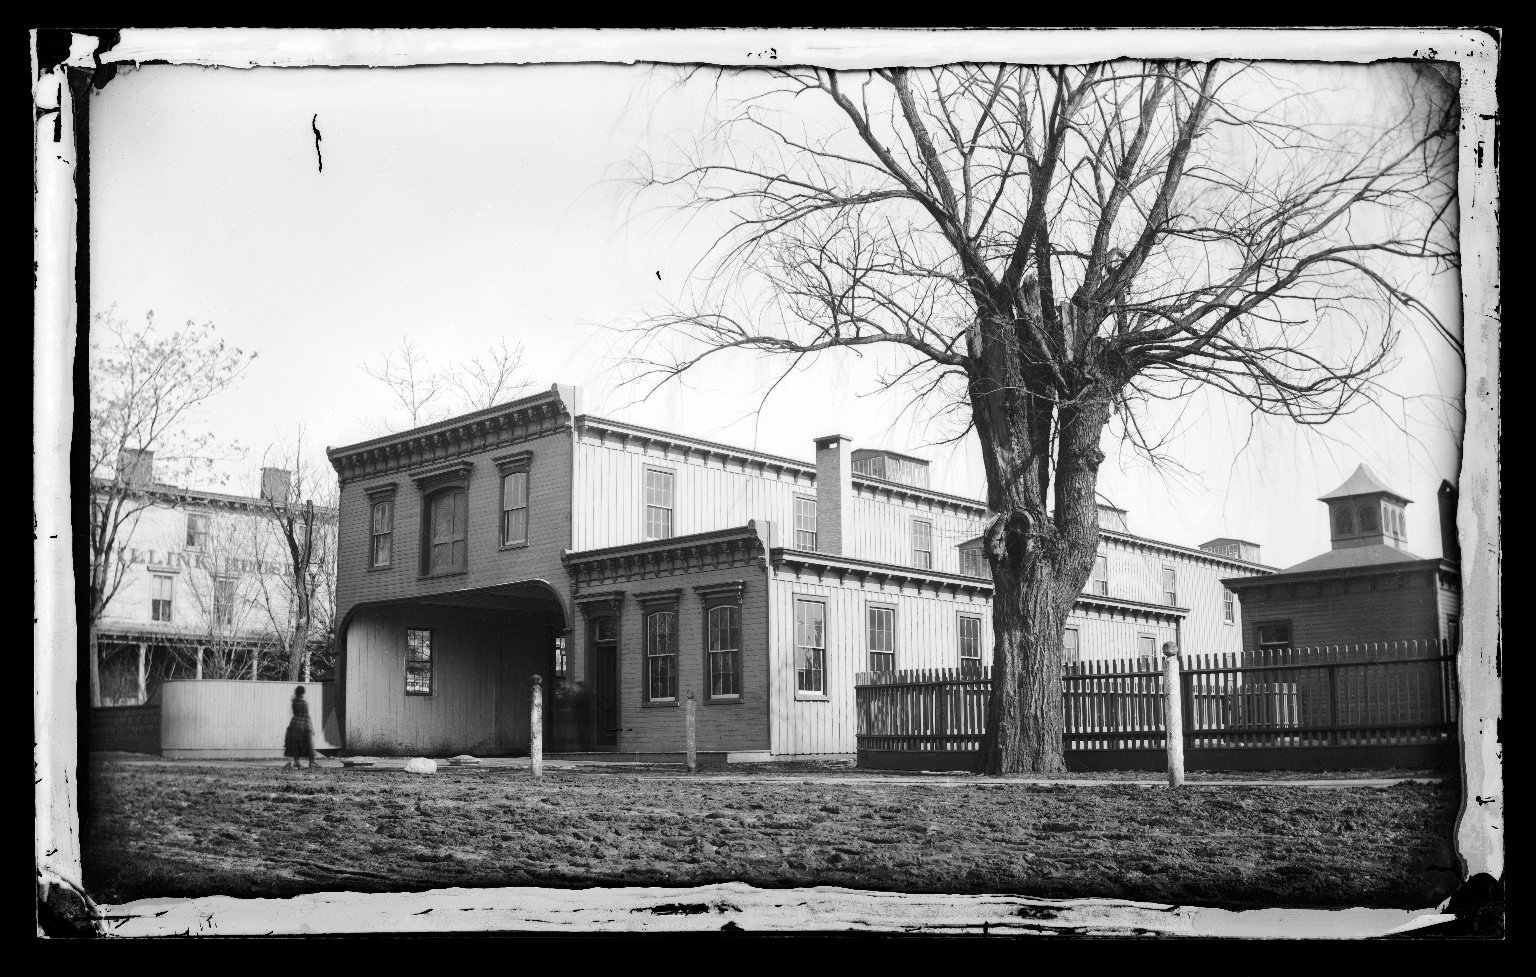 Brooklyn Museum: Railroad Station Car Stables, Flatbush, Brooklyn